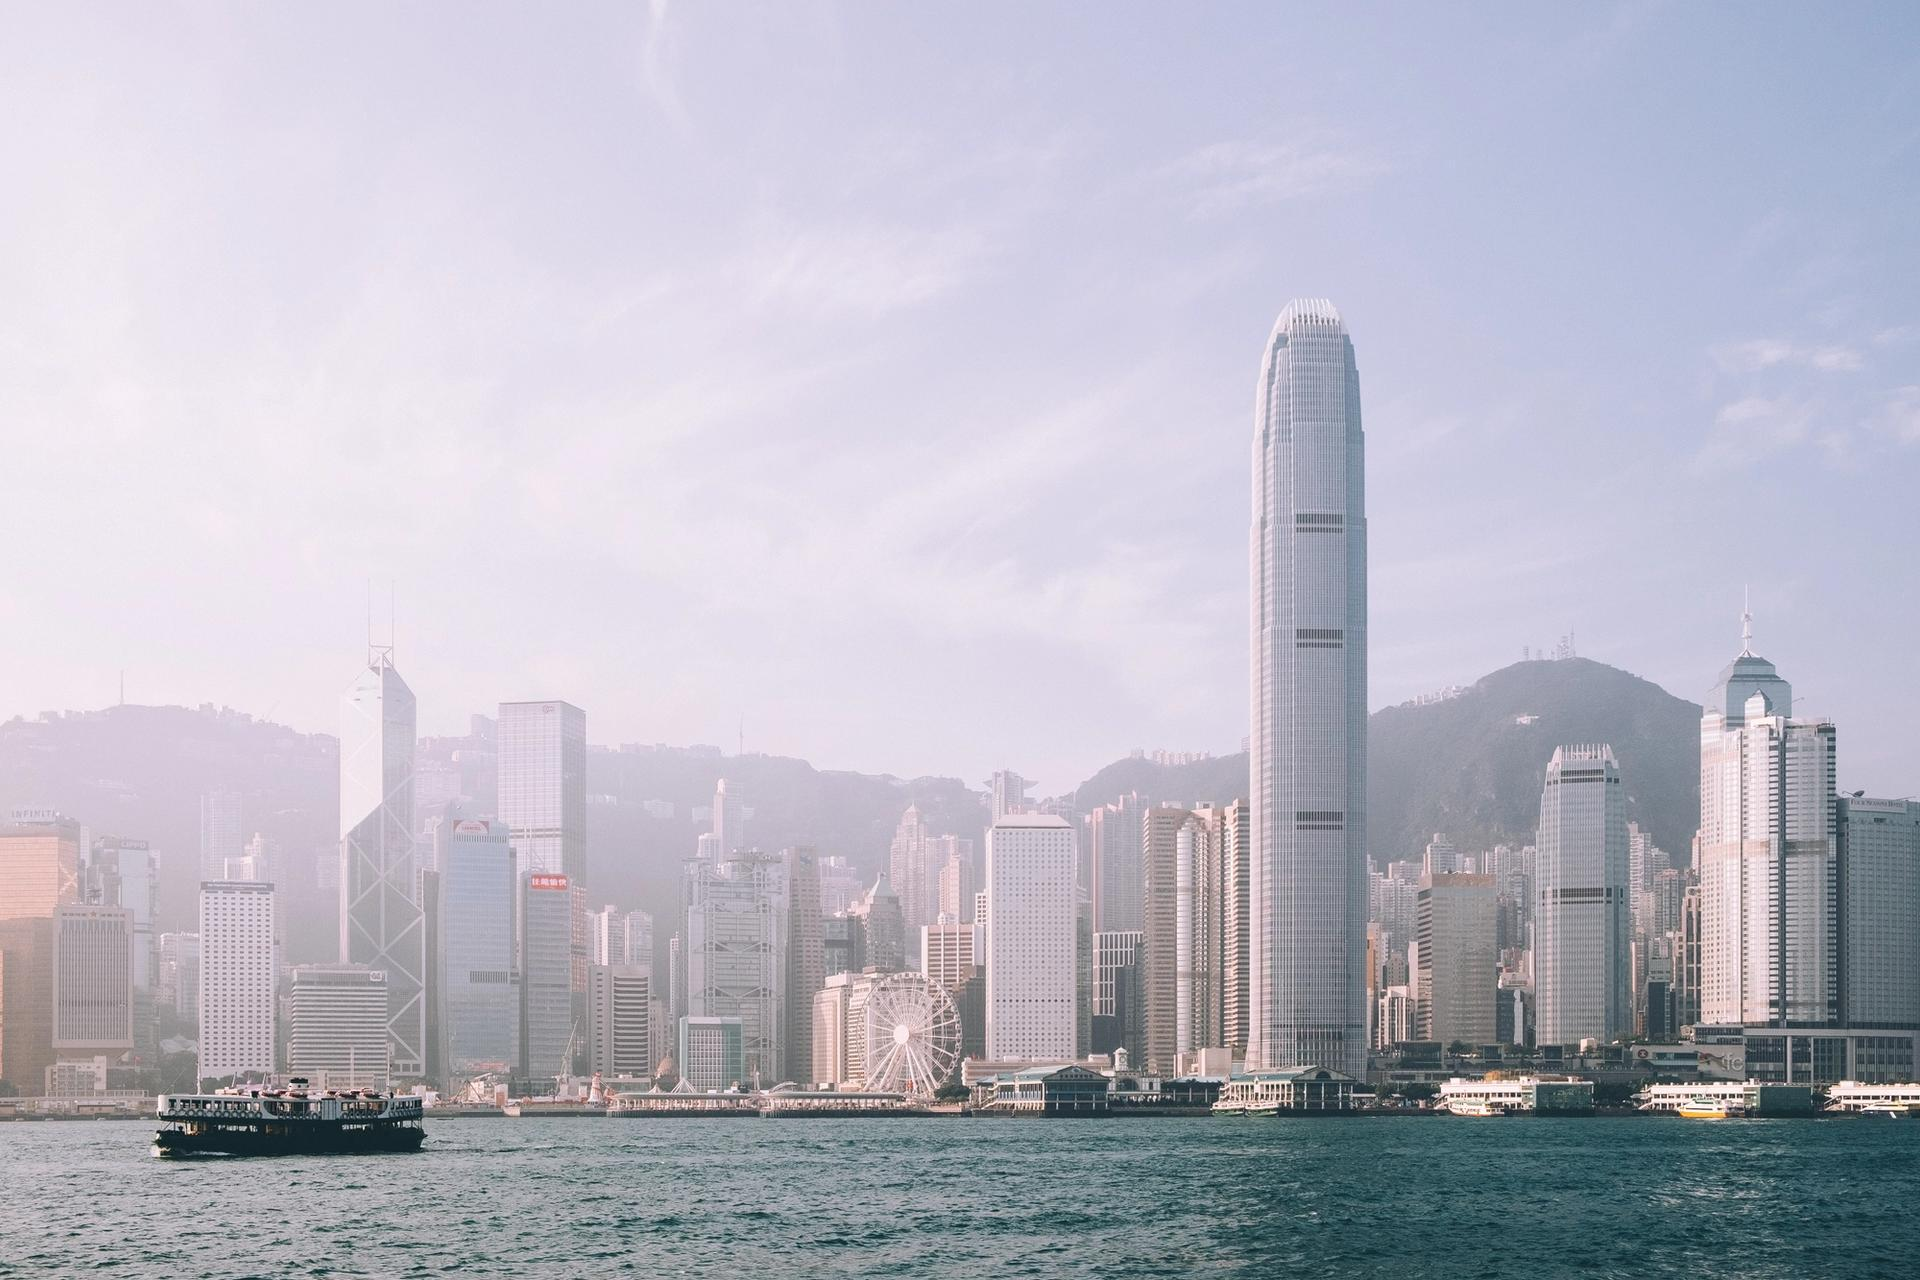 Hong Kong's national security law came into effect on 30 June © Dan Freeman